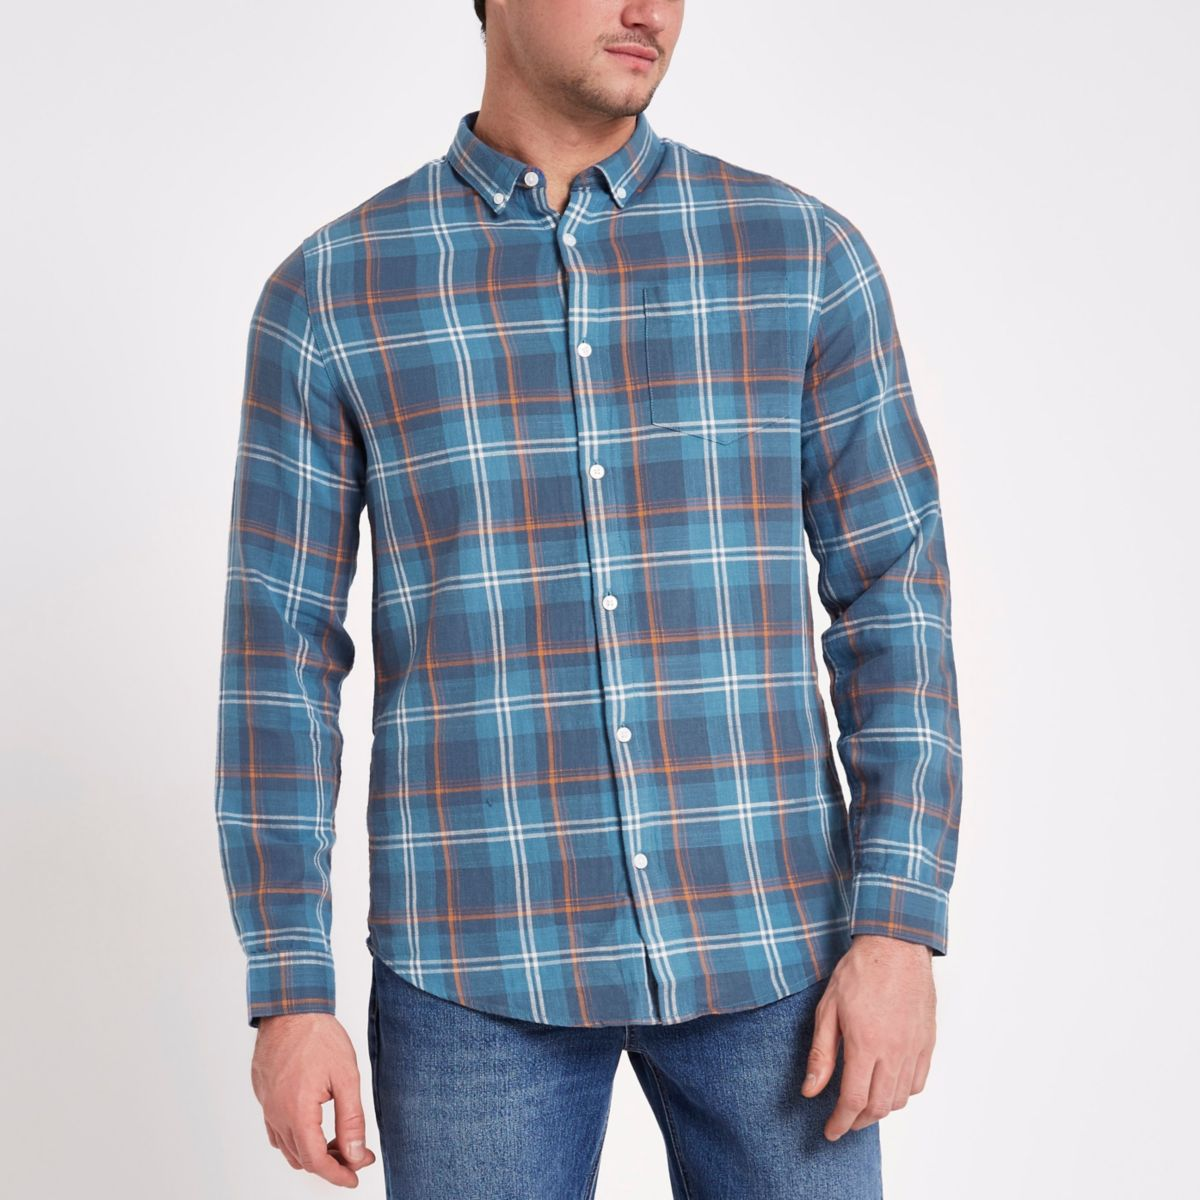 Blue check button-down shirt